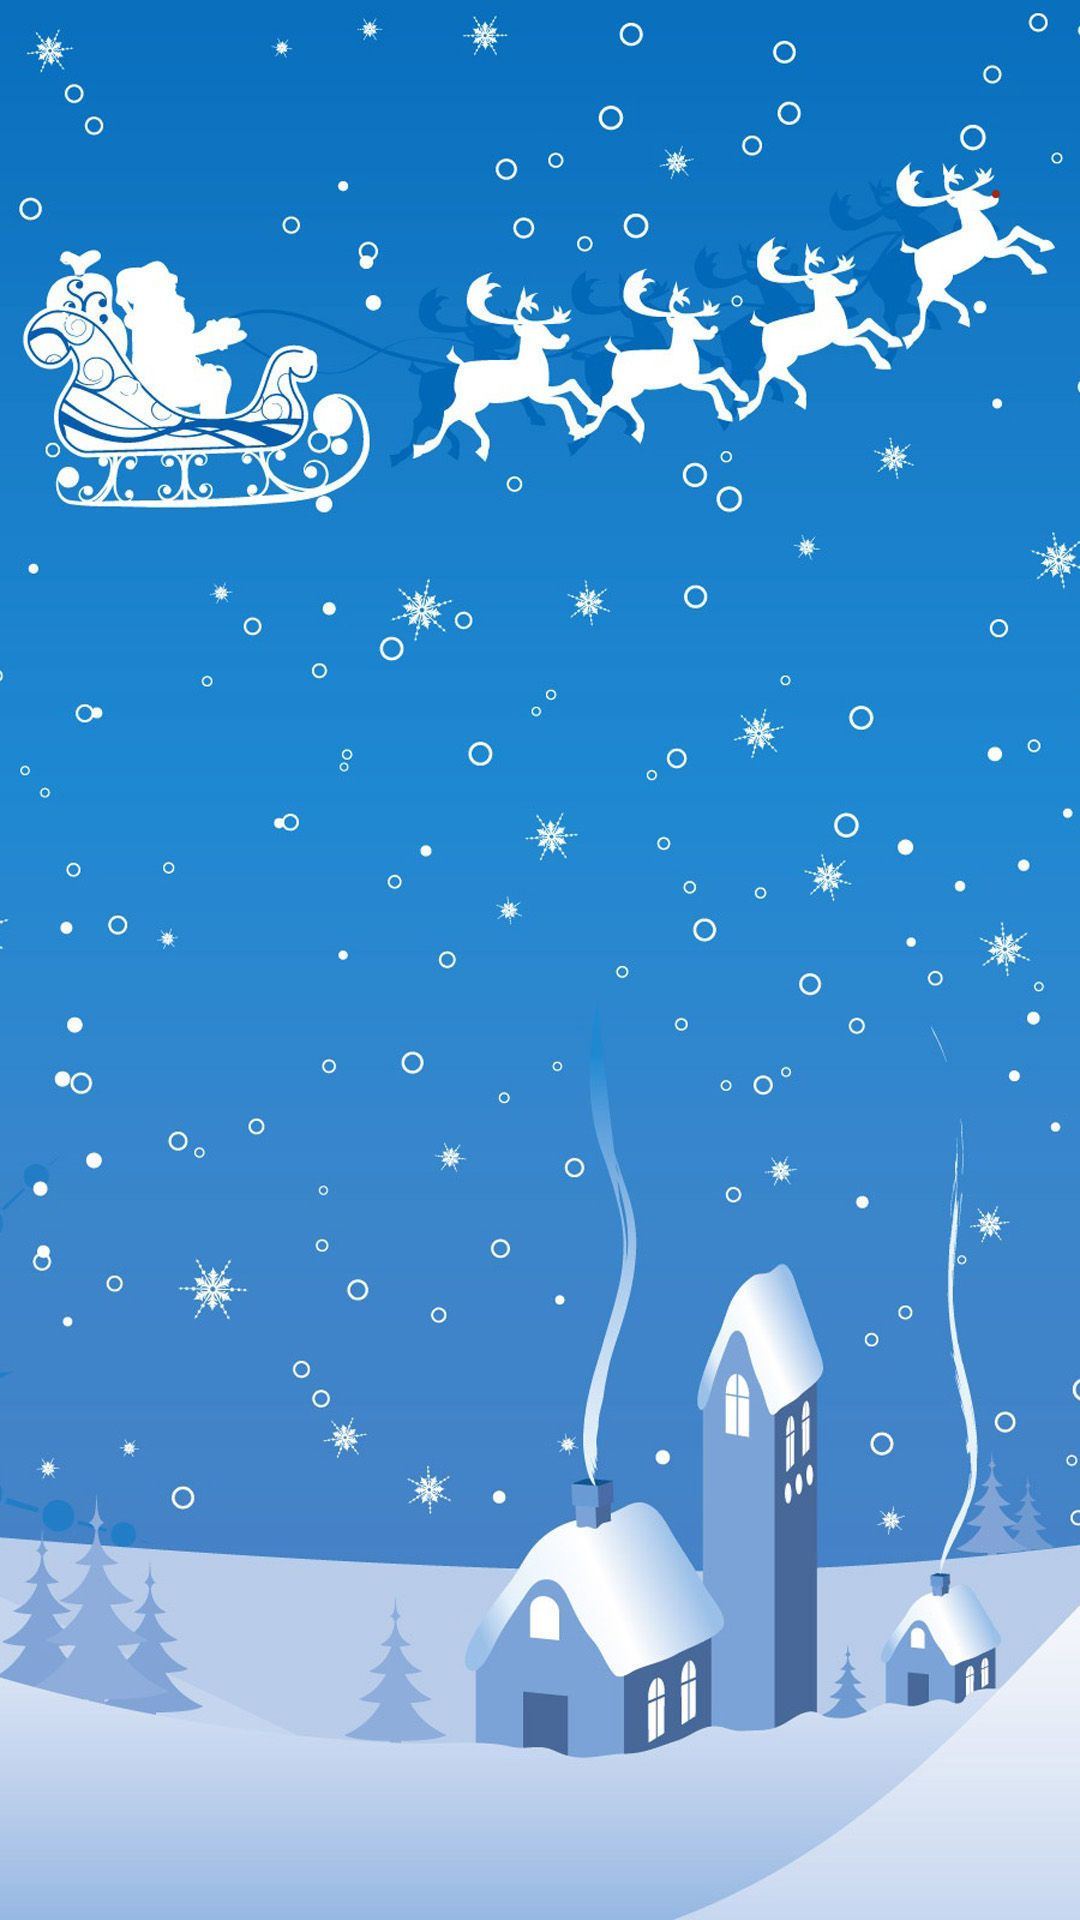 Samsung galaxy wallpaper christmas christmas theme blue background samsung galaxy wallpaper christmas christmas theme blue background hd samsung galaxy s4 wallpaper voltagebd Gallery